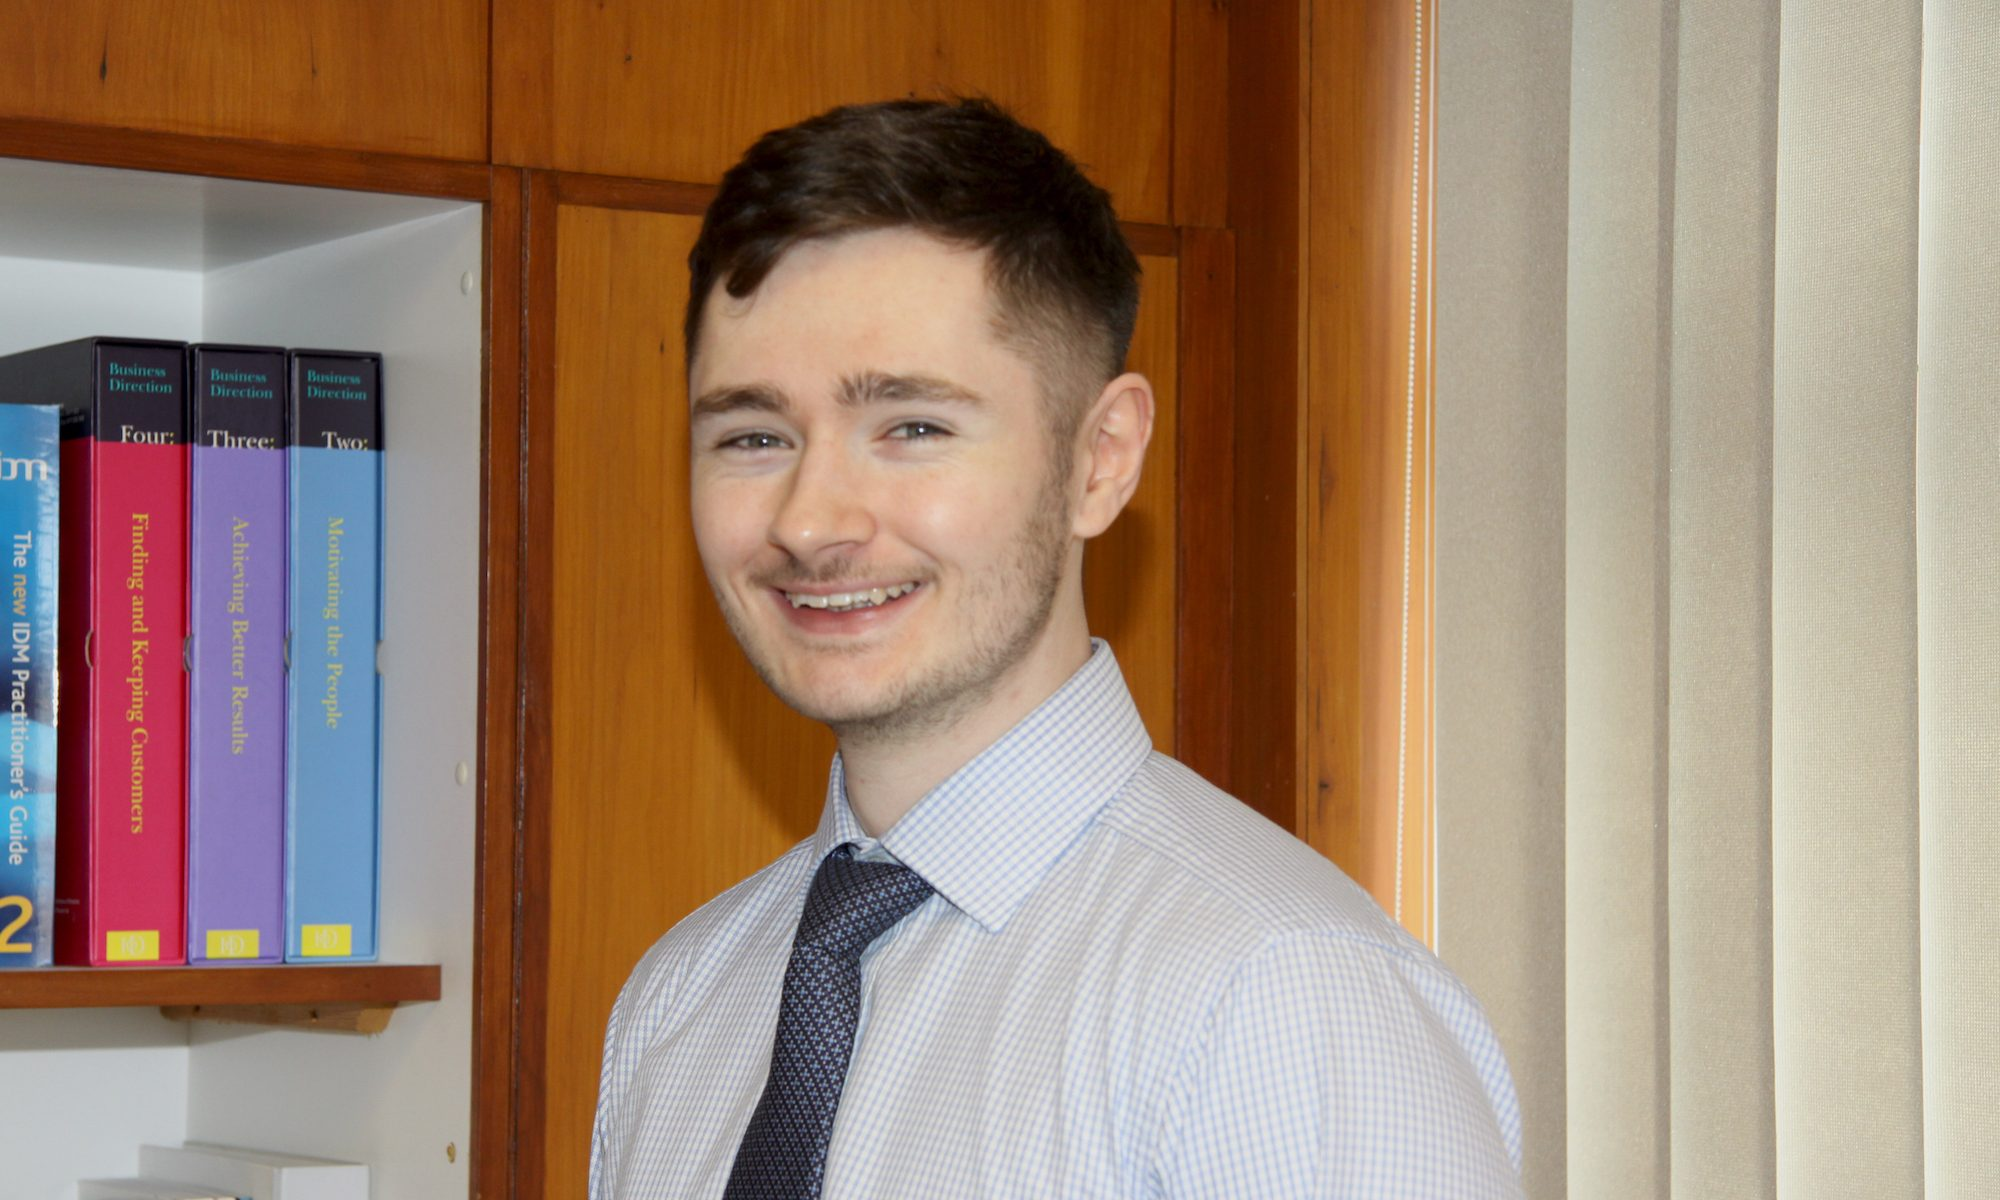 David Mathias Camloc 2000x1200 - We're engineering future success with the appointment of new Applications Engineer, David Mathias